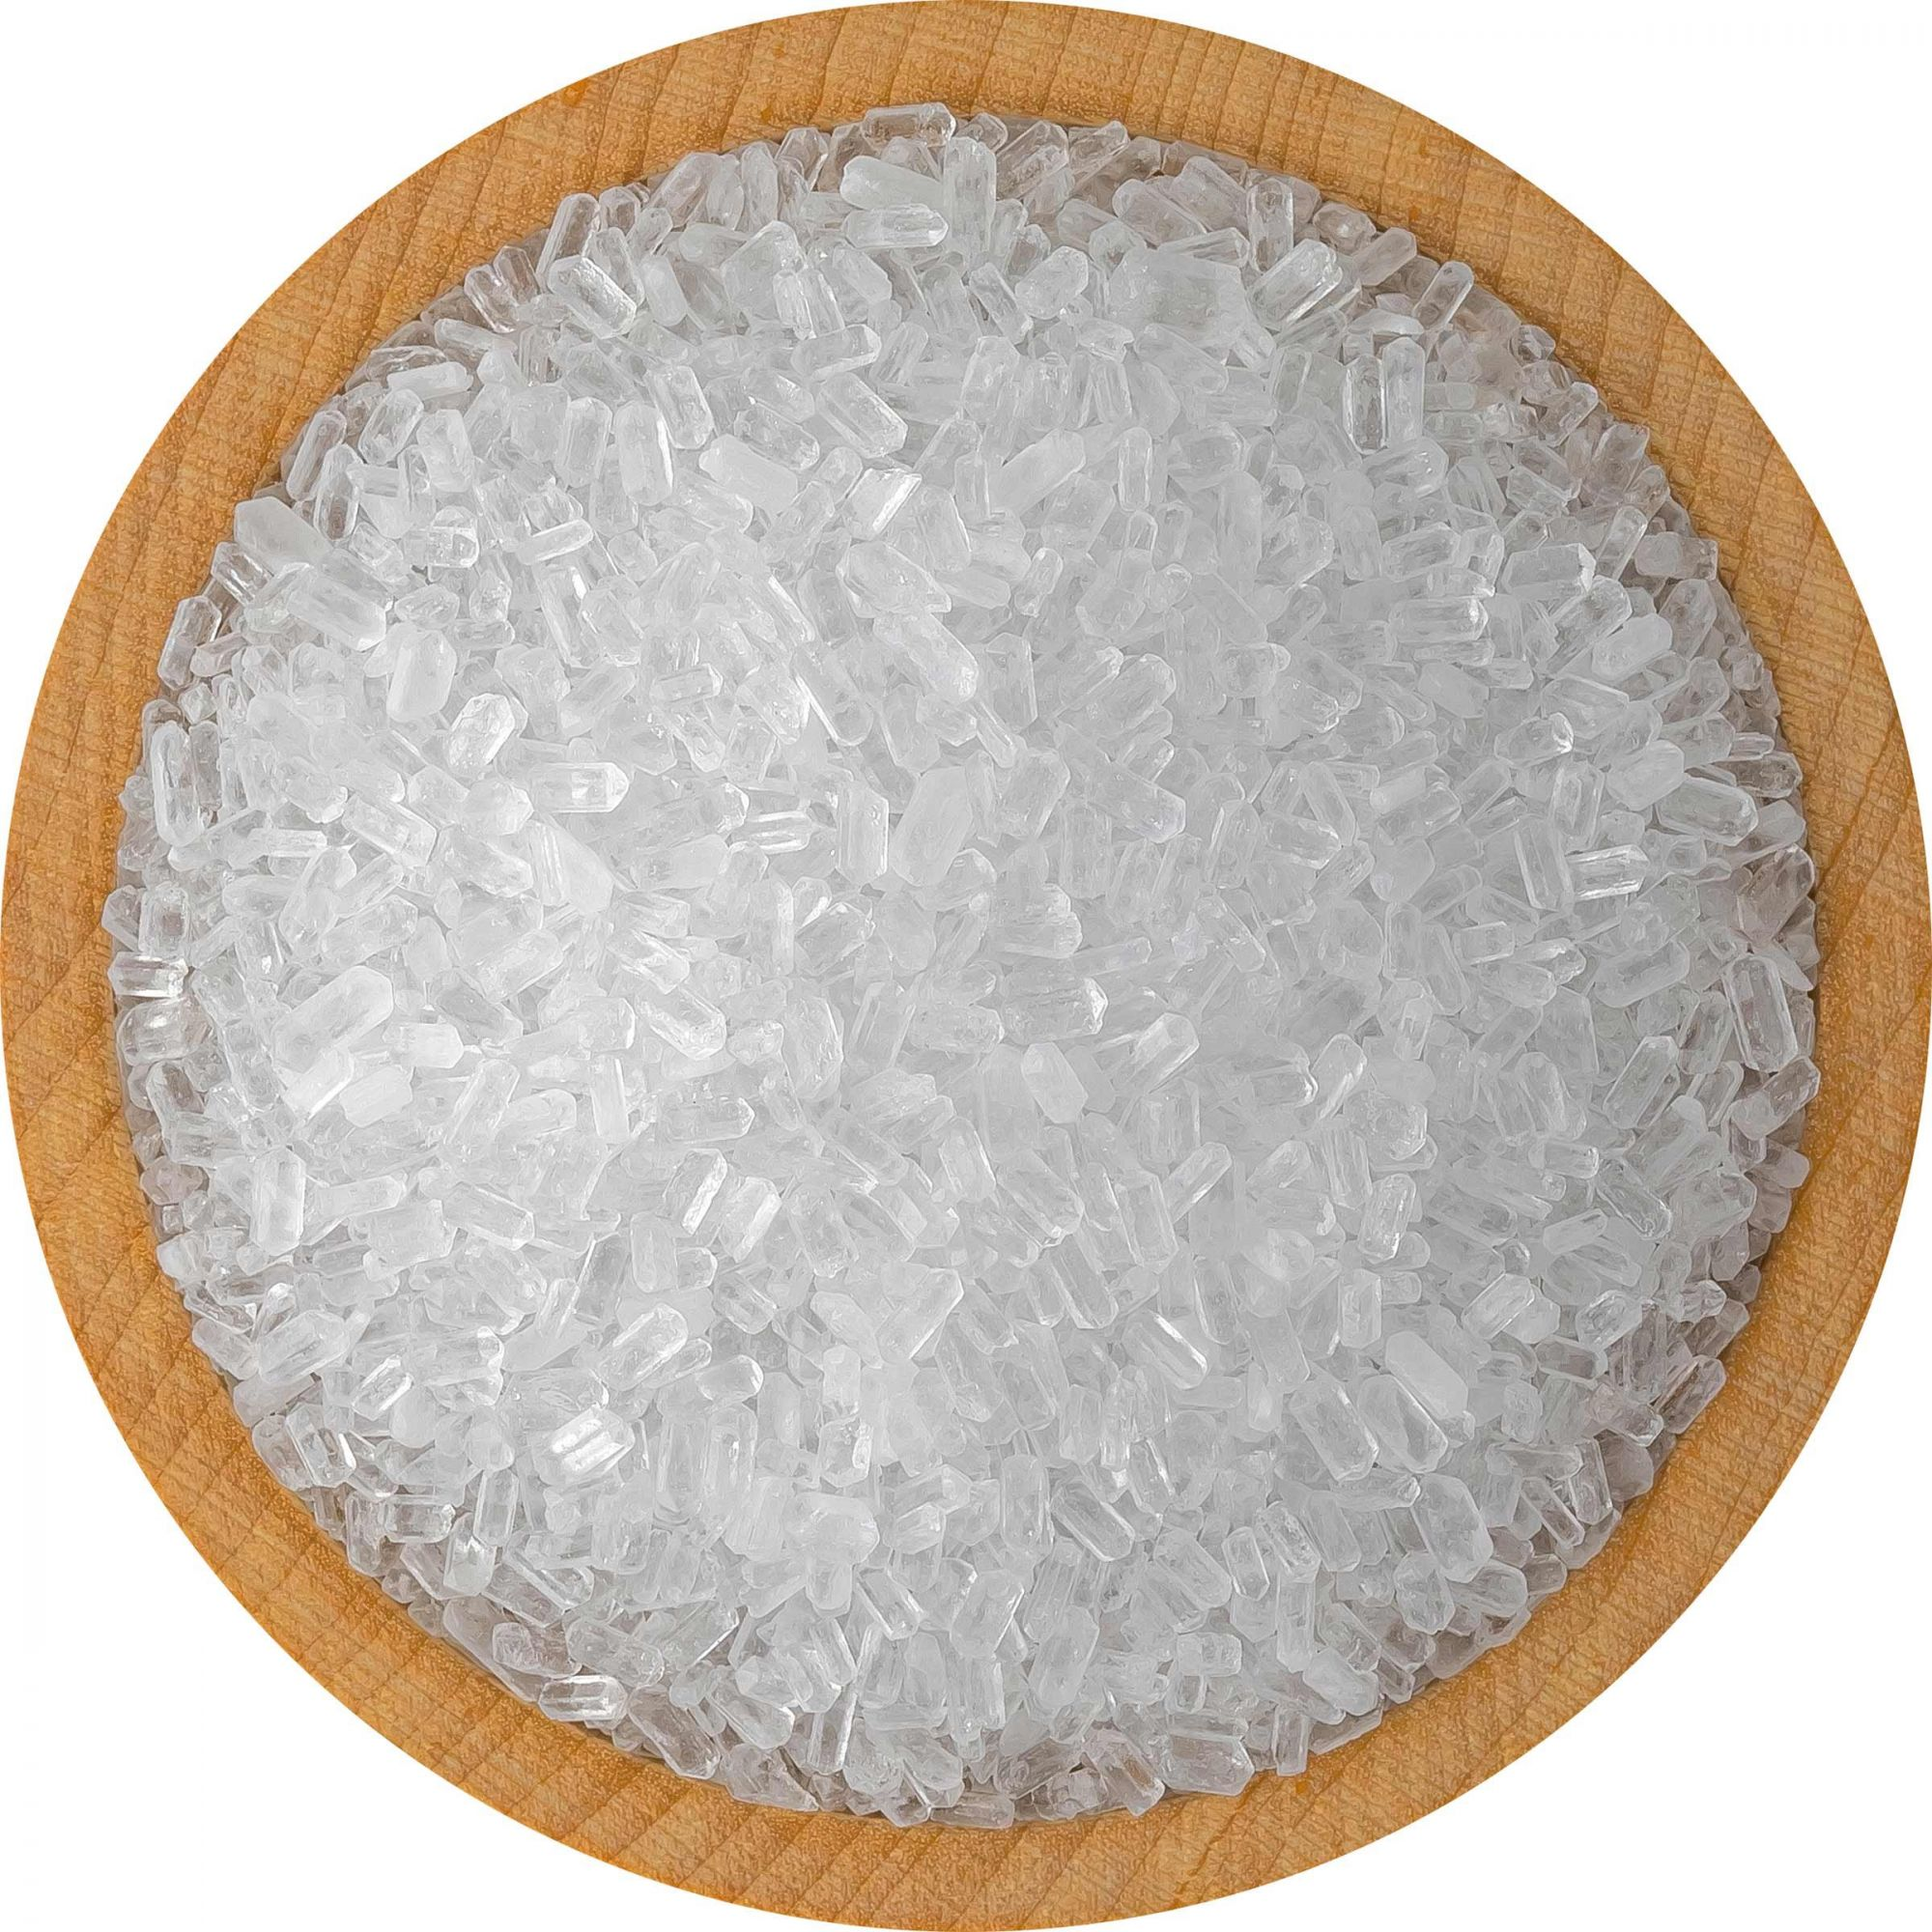 Epsom salt : 99.5% Pure Magnesium Sulphate-Unscented, Medium Grain, 907gms Pack